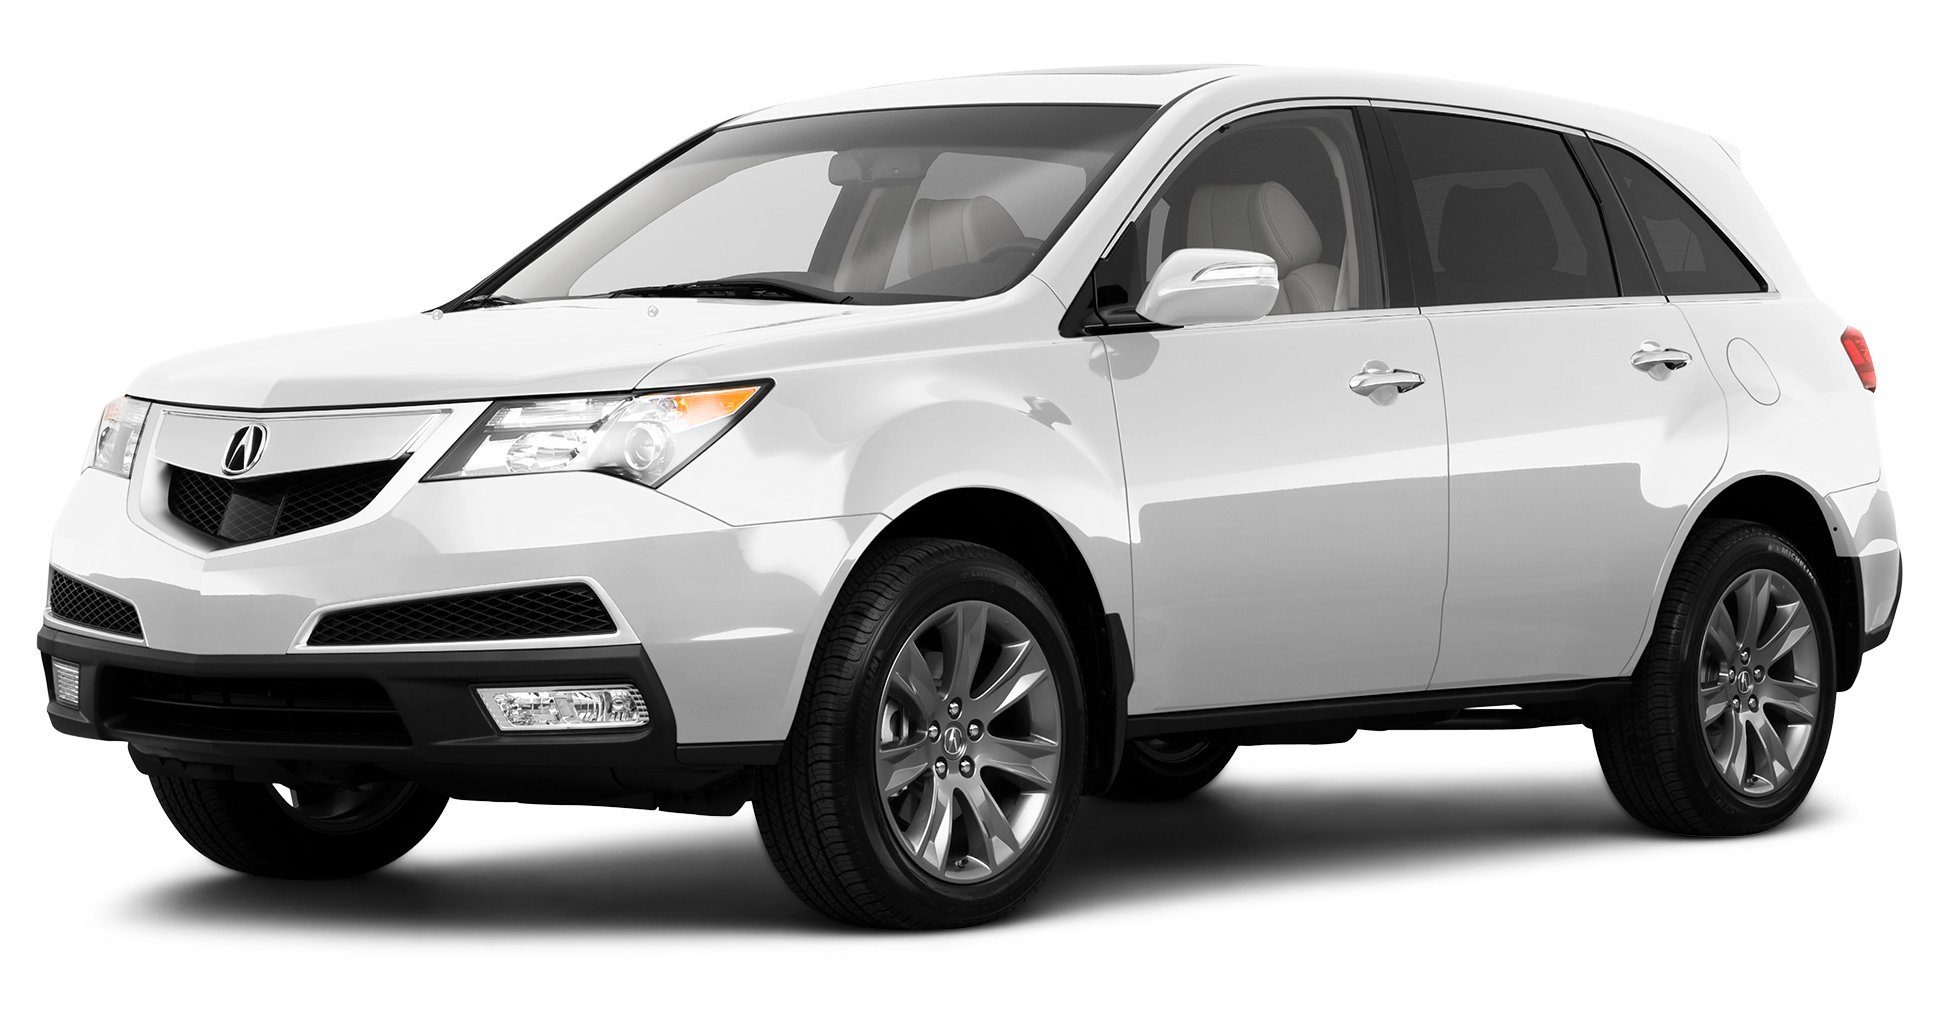 Amazon 2010 Acura MDX Reviews and Specs Vehicles